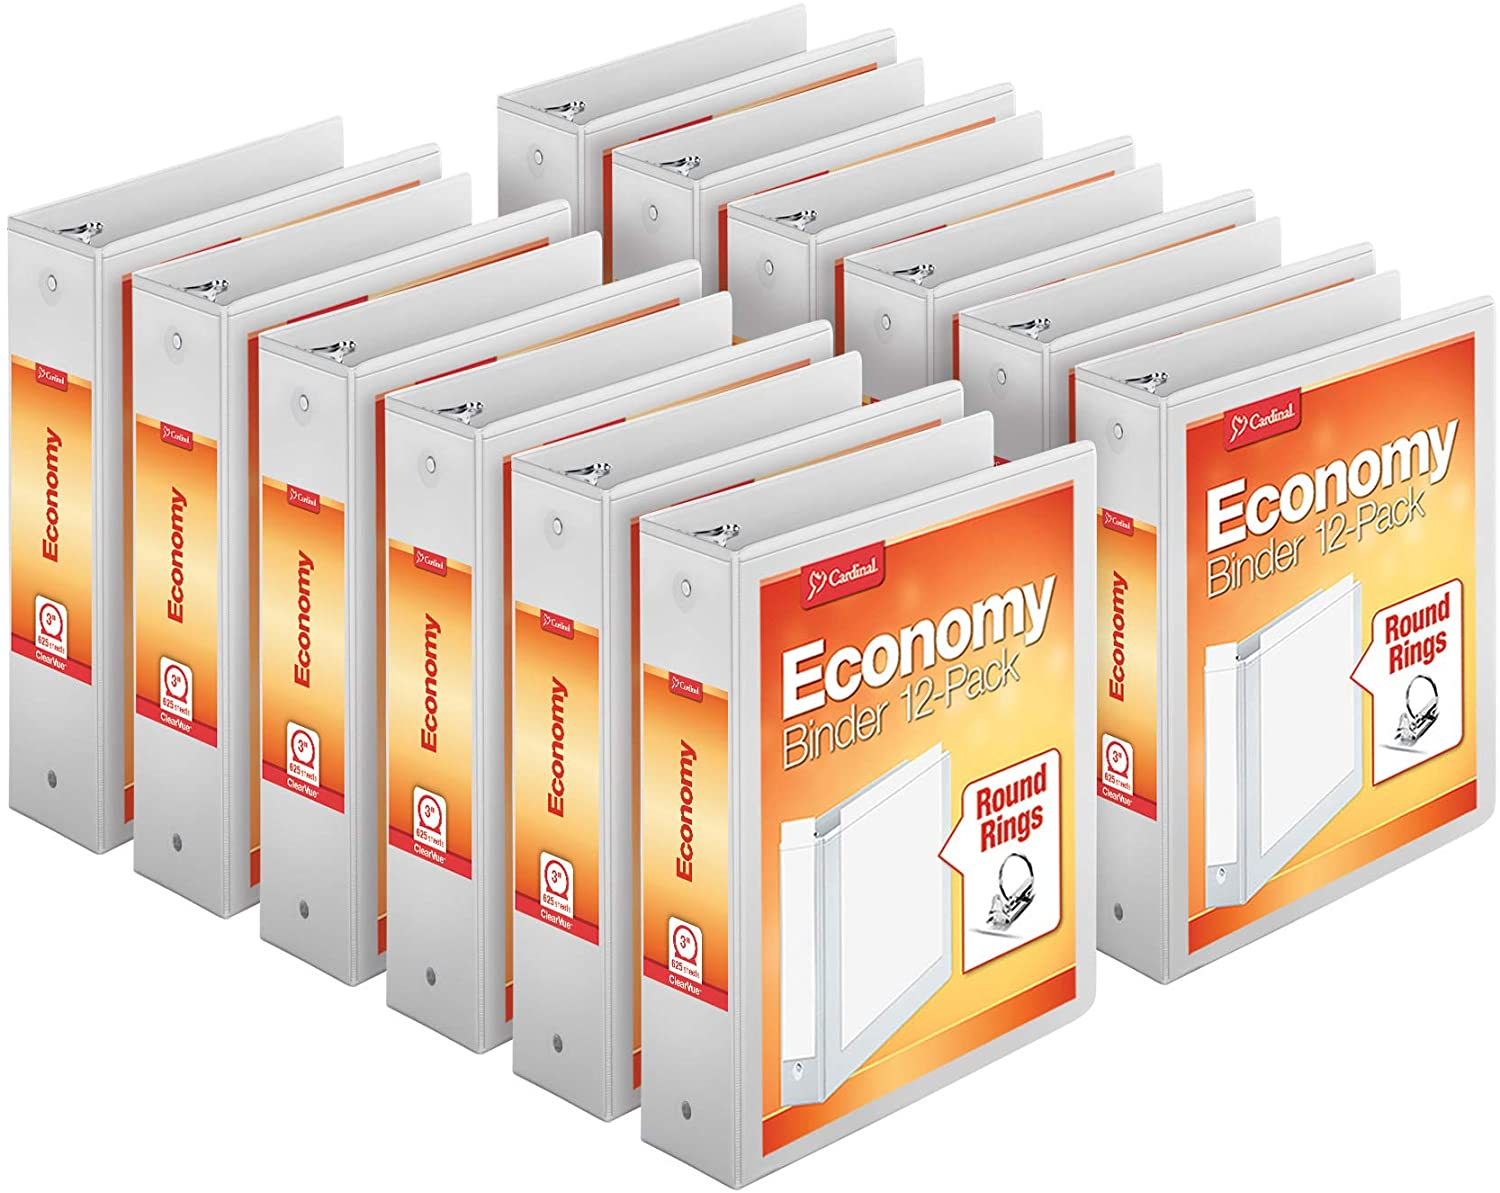 "Cardinal Economy 3-Ring Binders, 3"", Round Rings, Holds 625 Sheets, ClearVue Presentation View, Non-Stick, White, Carton of 12 (90651) : View Binders : Office Products"